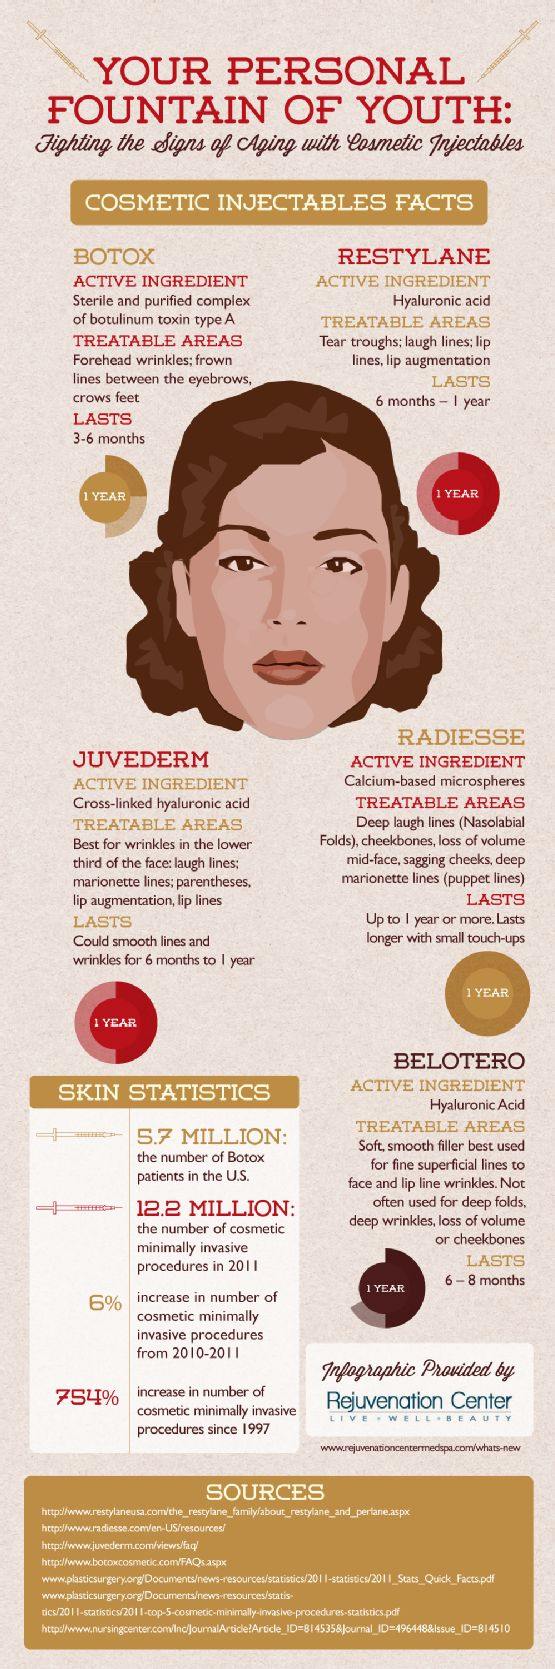 Are you tired of looking older than you feel? Botox, Restylane, Juvederm, Radiesse, and Belotero rejuvenate your skin and erase years from your appearance. Find out how in this infographic about Botox and facial fillers. http://thriveportland.com/